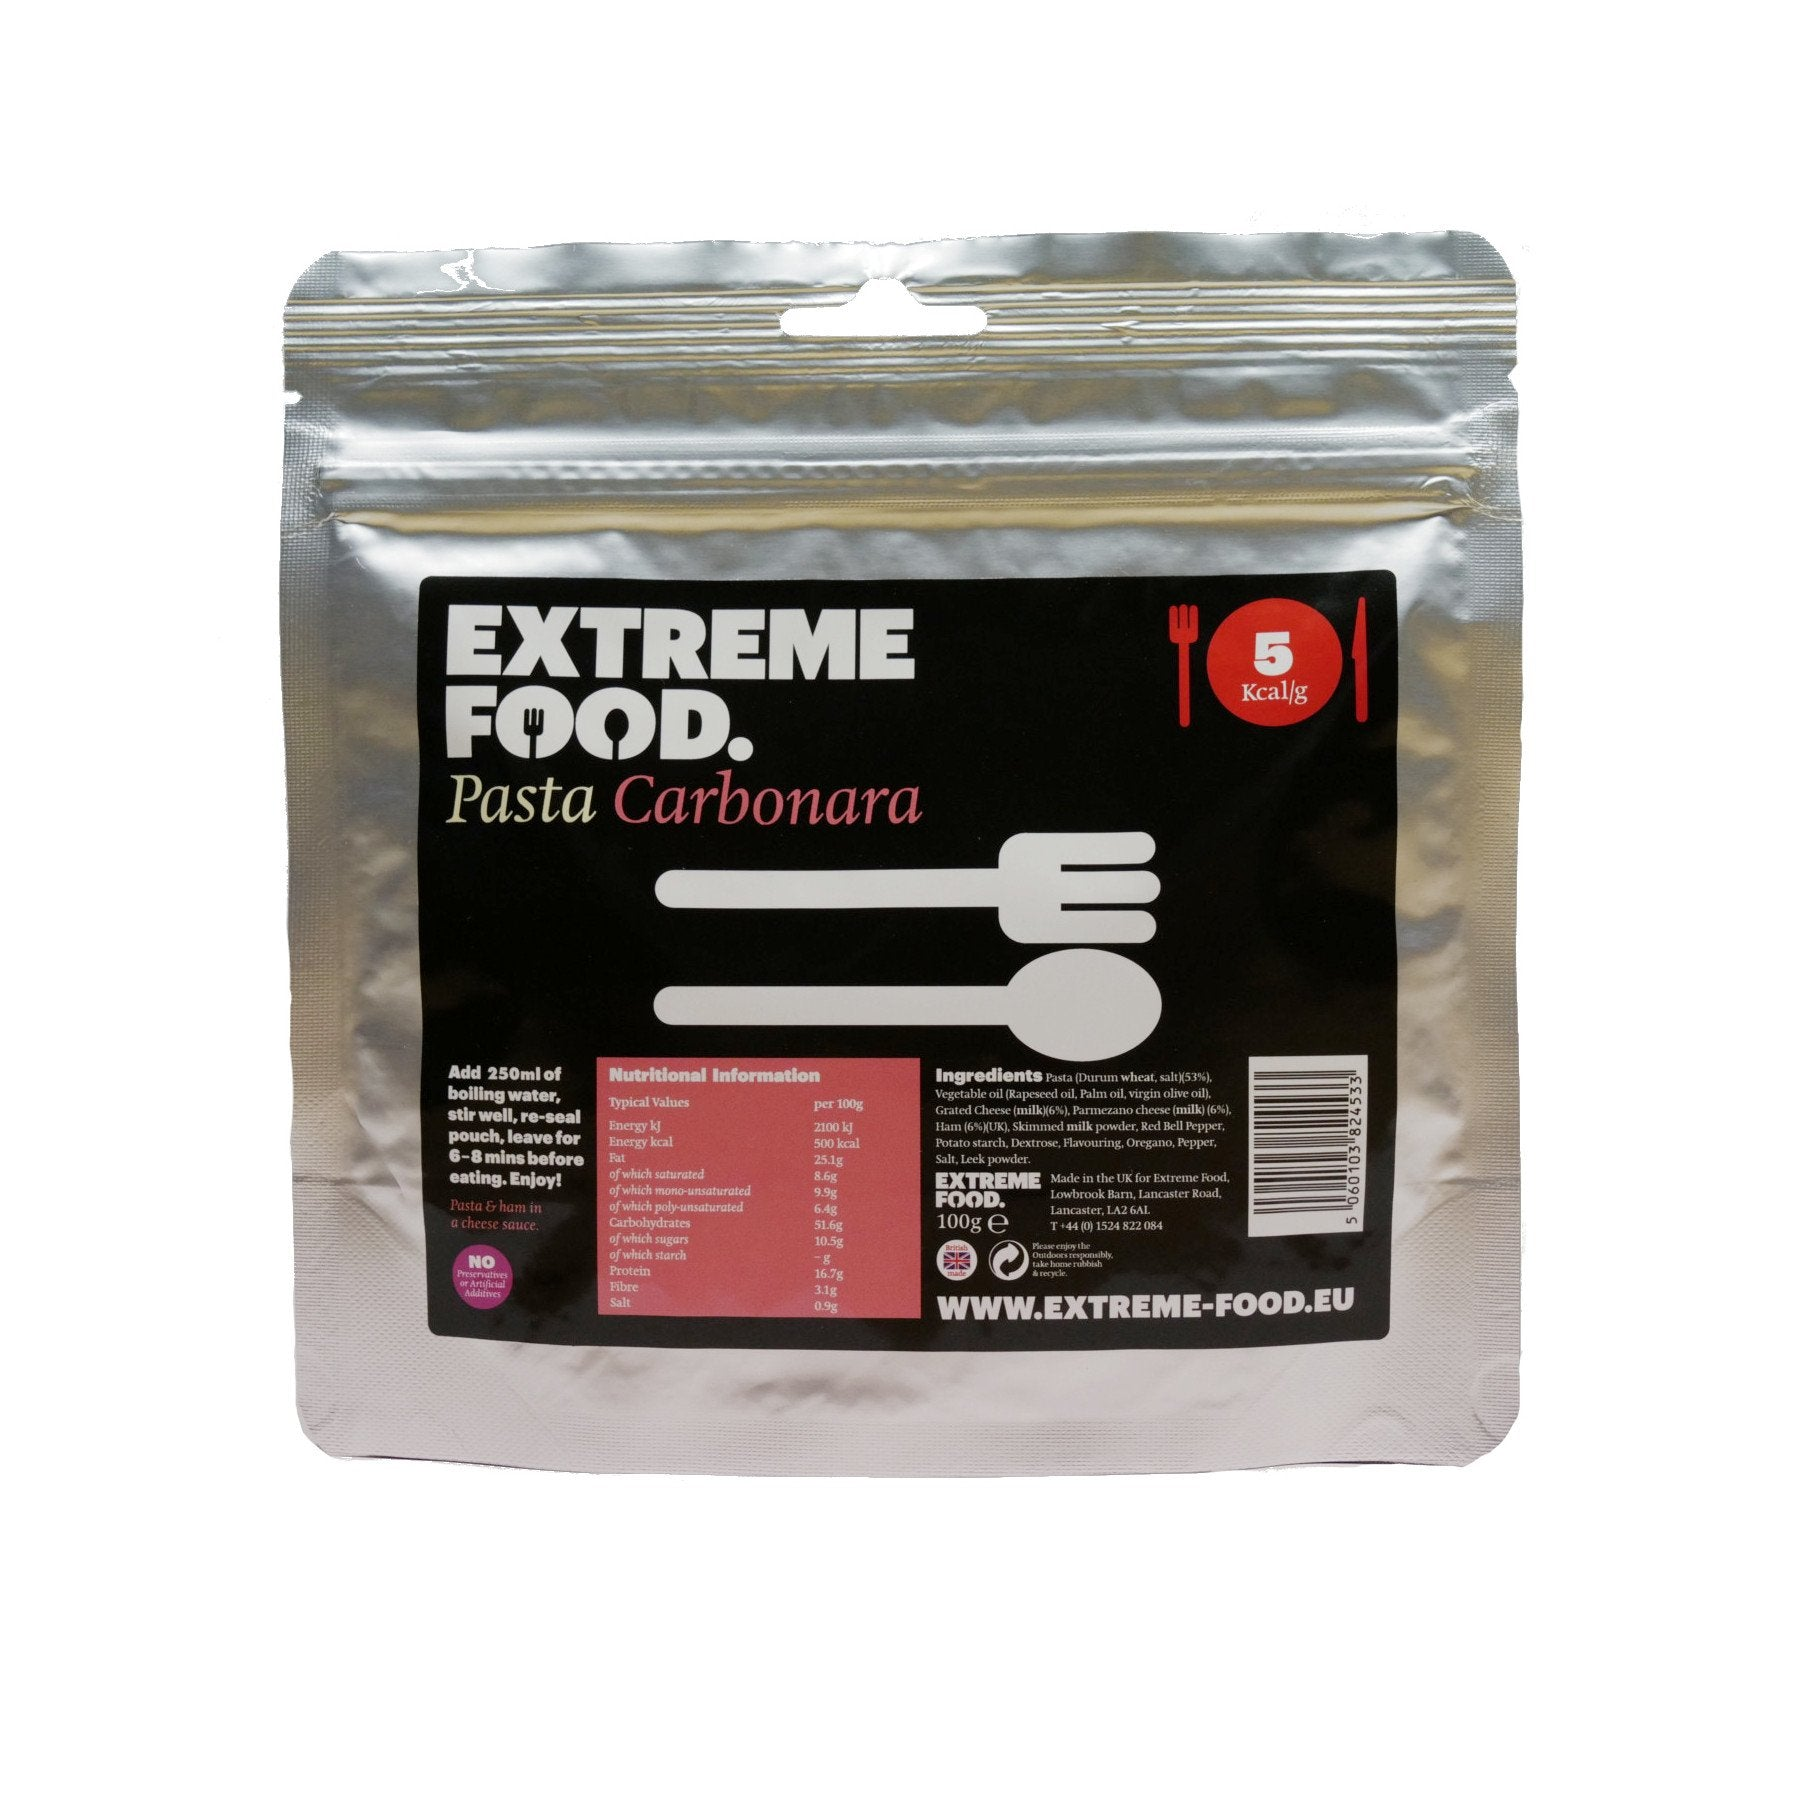 Extreme Food Pasta Carbonara, dried expedition food pack